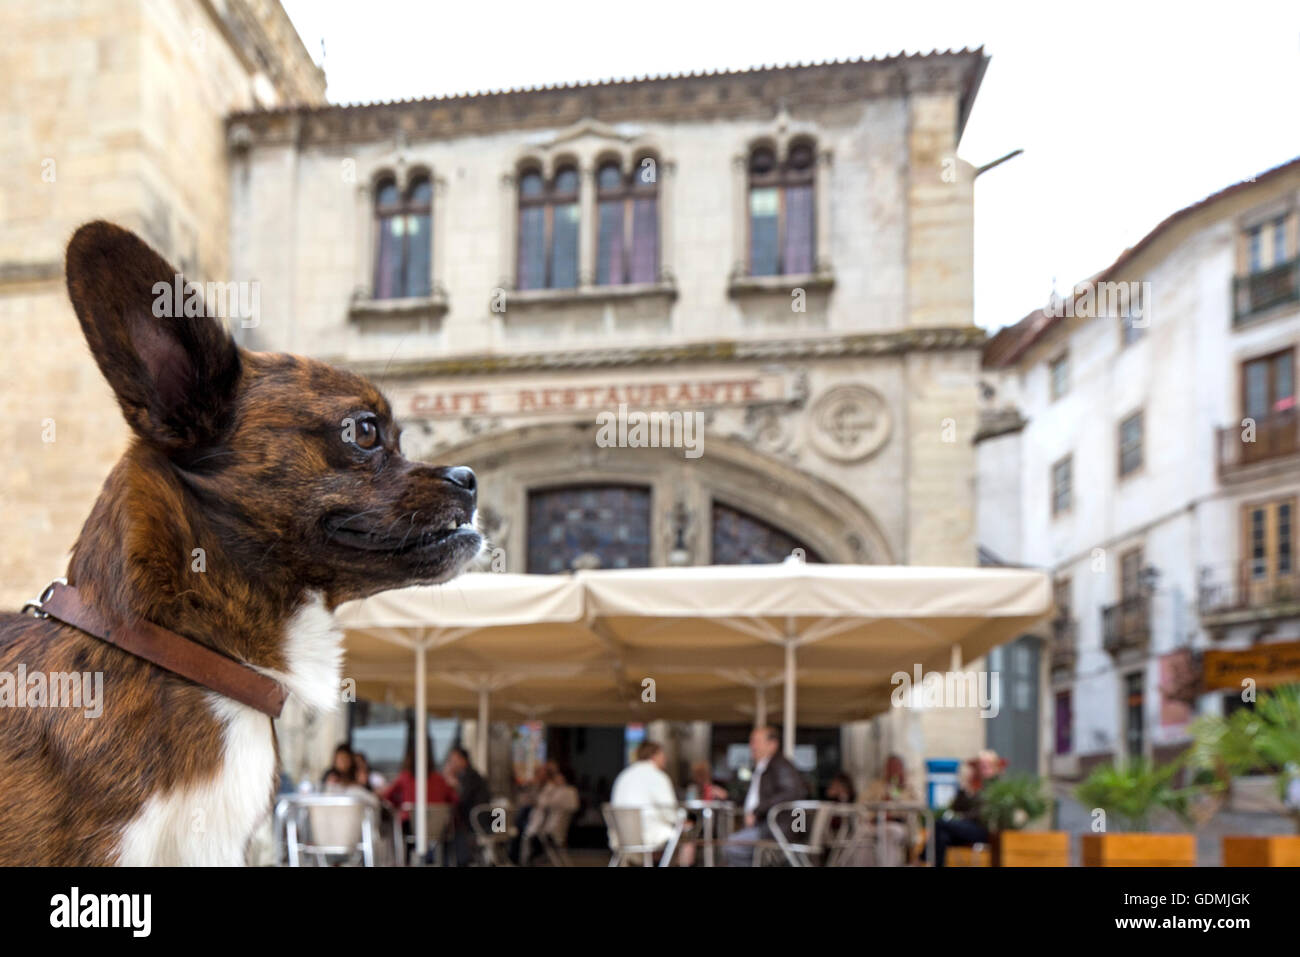 Dog in front of a sidewalk cafe, Coimbra, Coimbra District, Portugal, Europe, Travel, Travel Photography - Stock Image